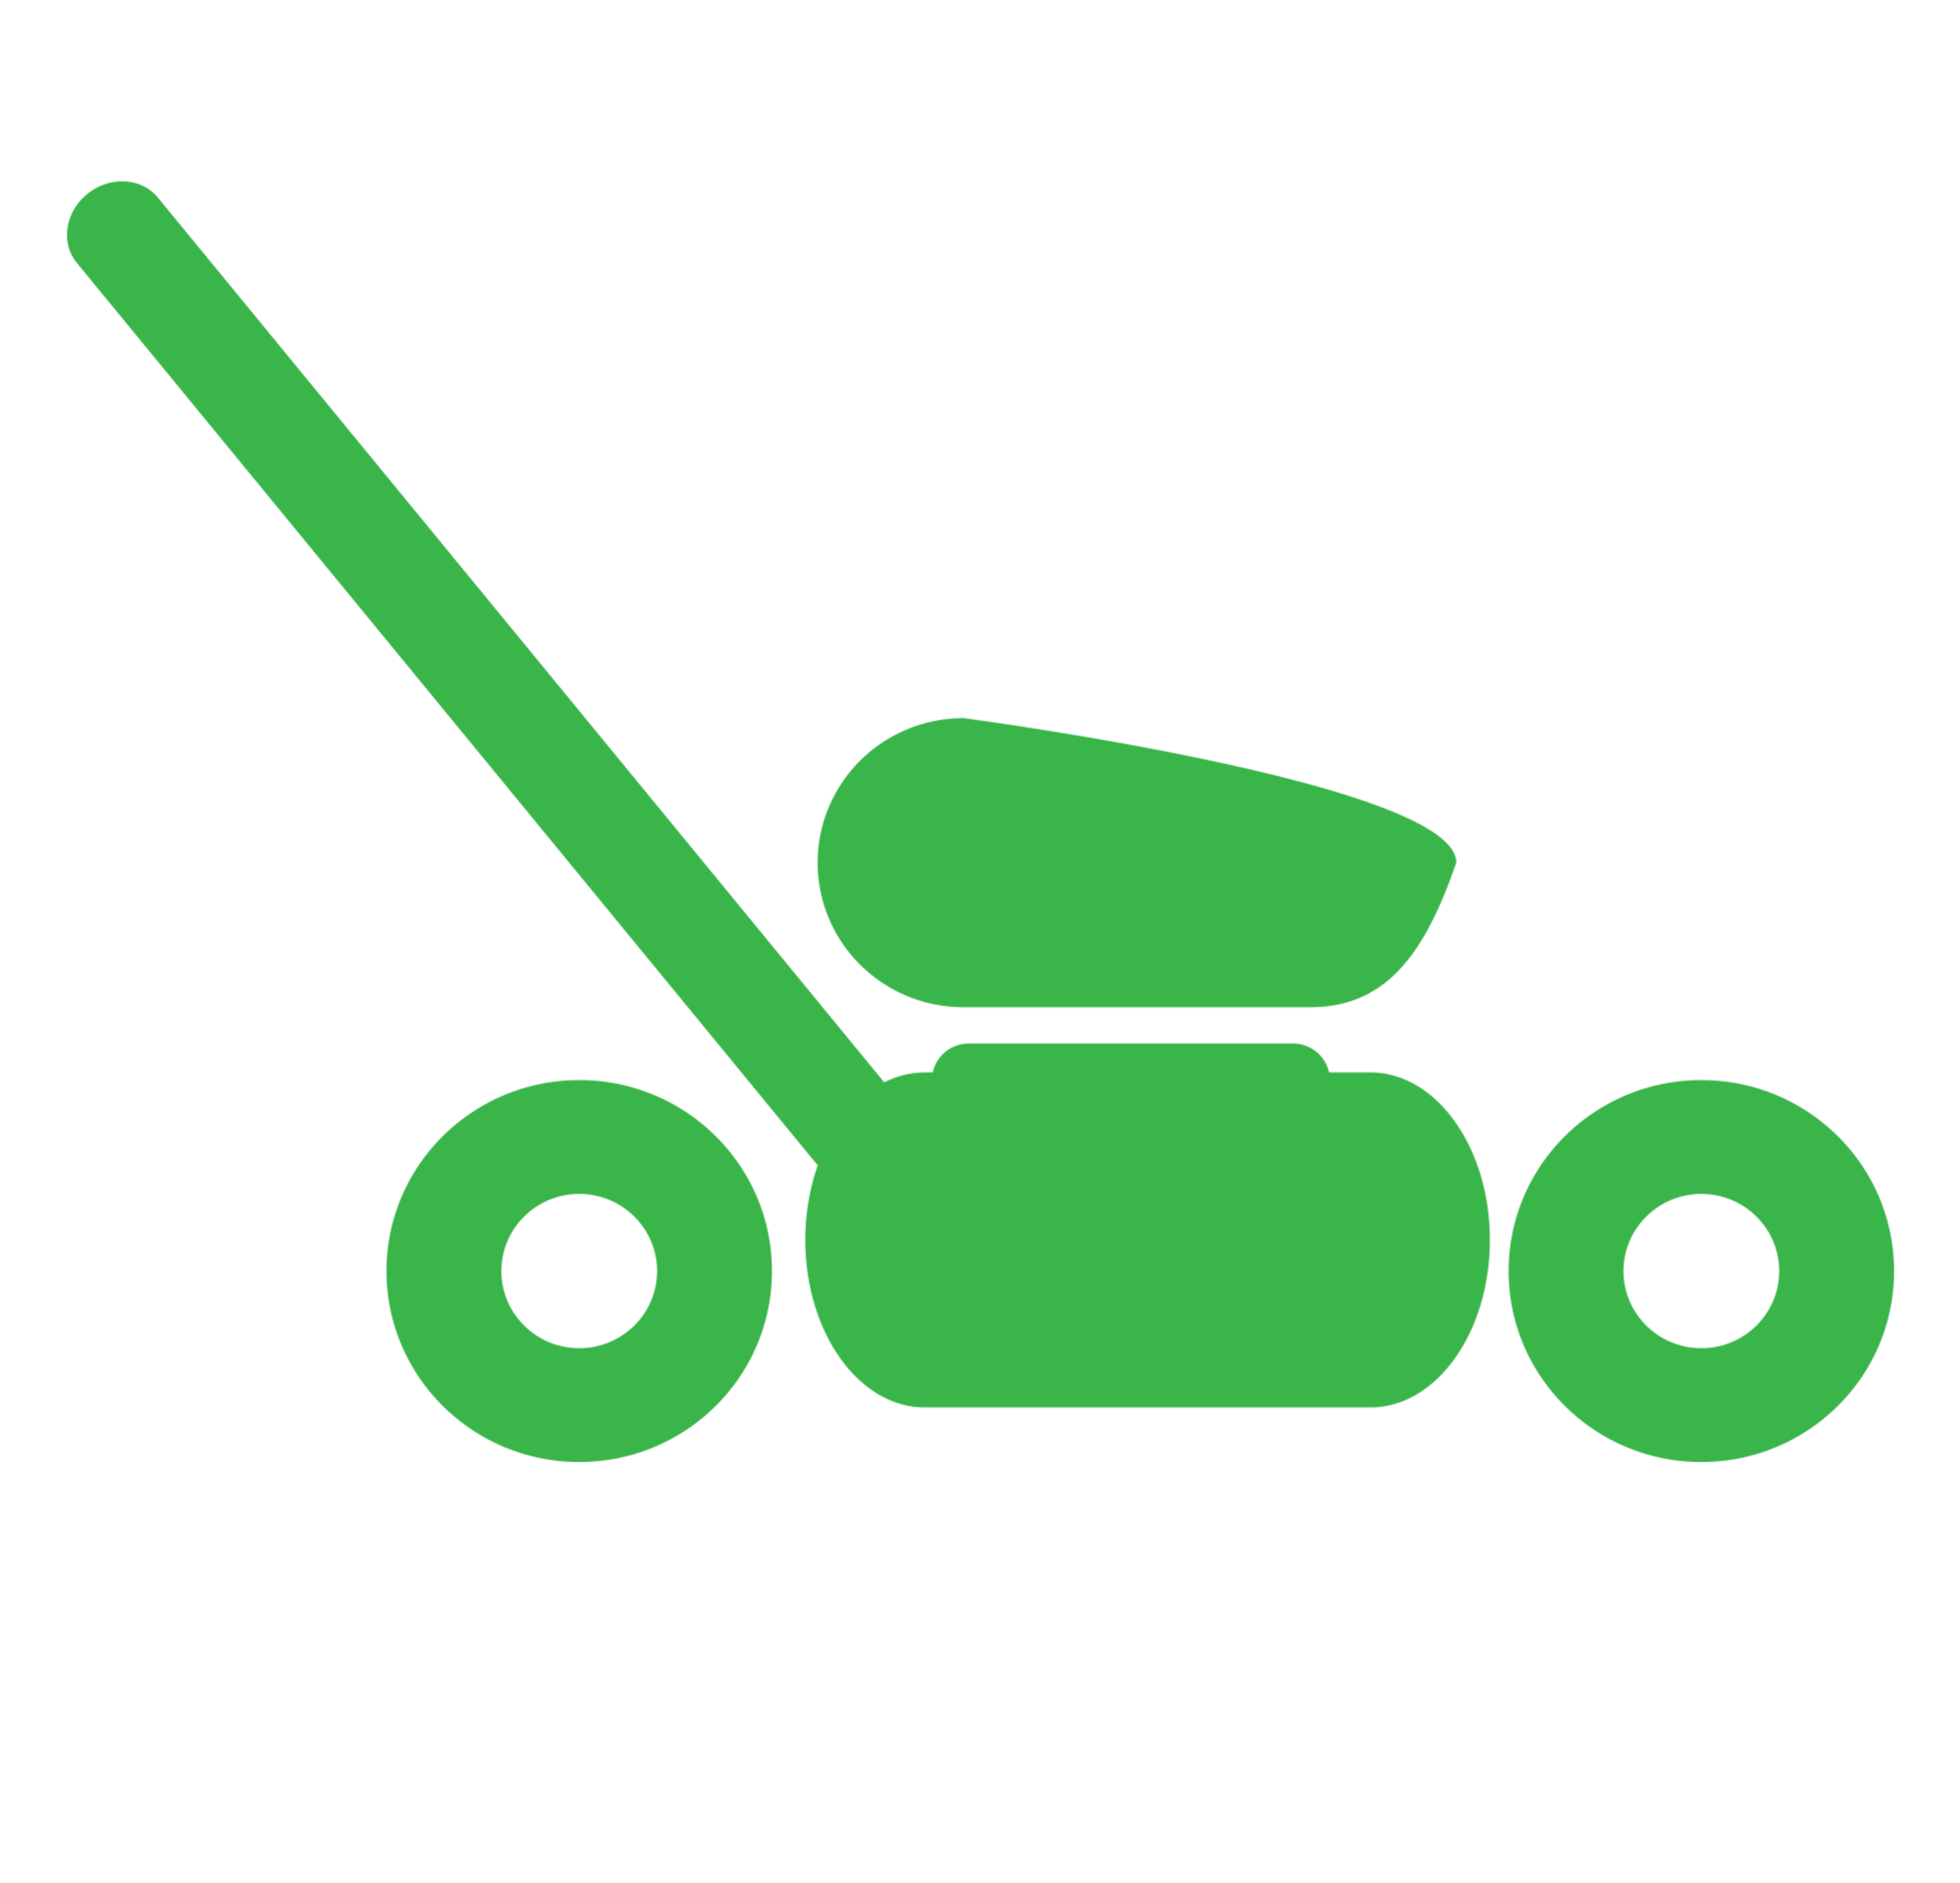 Clipart grass lawn mower.  collection of high